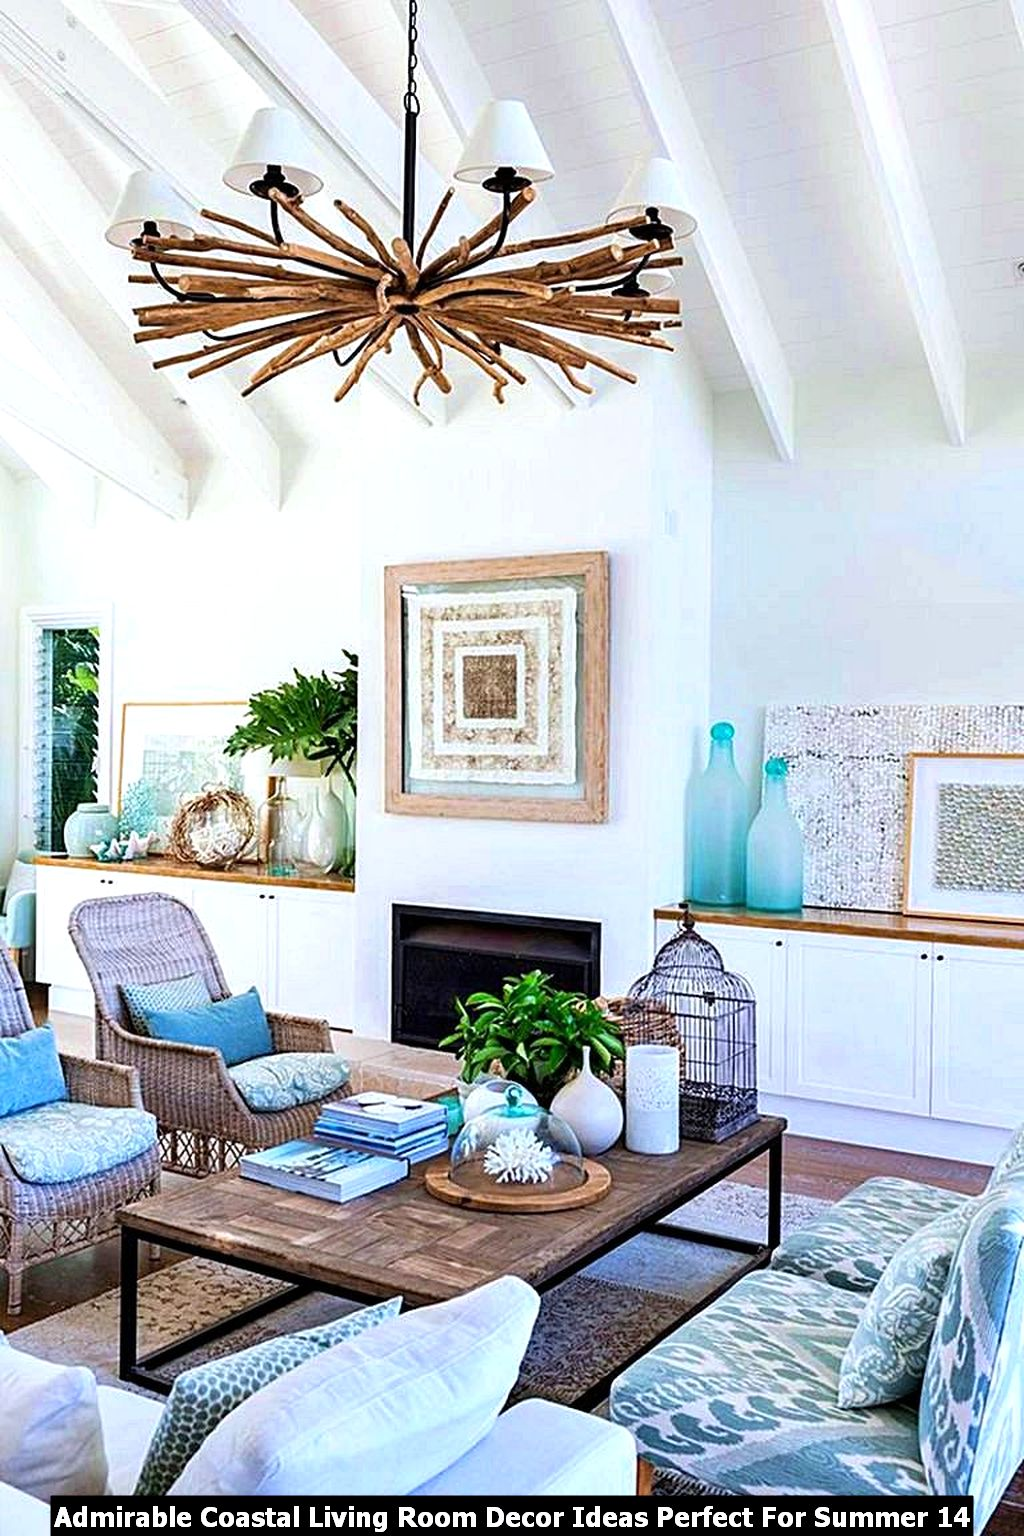 Admirable Coastal Living Room Decor Ideas Perfect For Summer 14